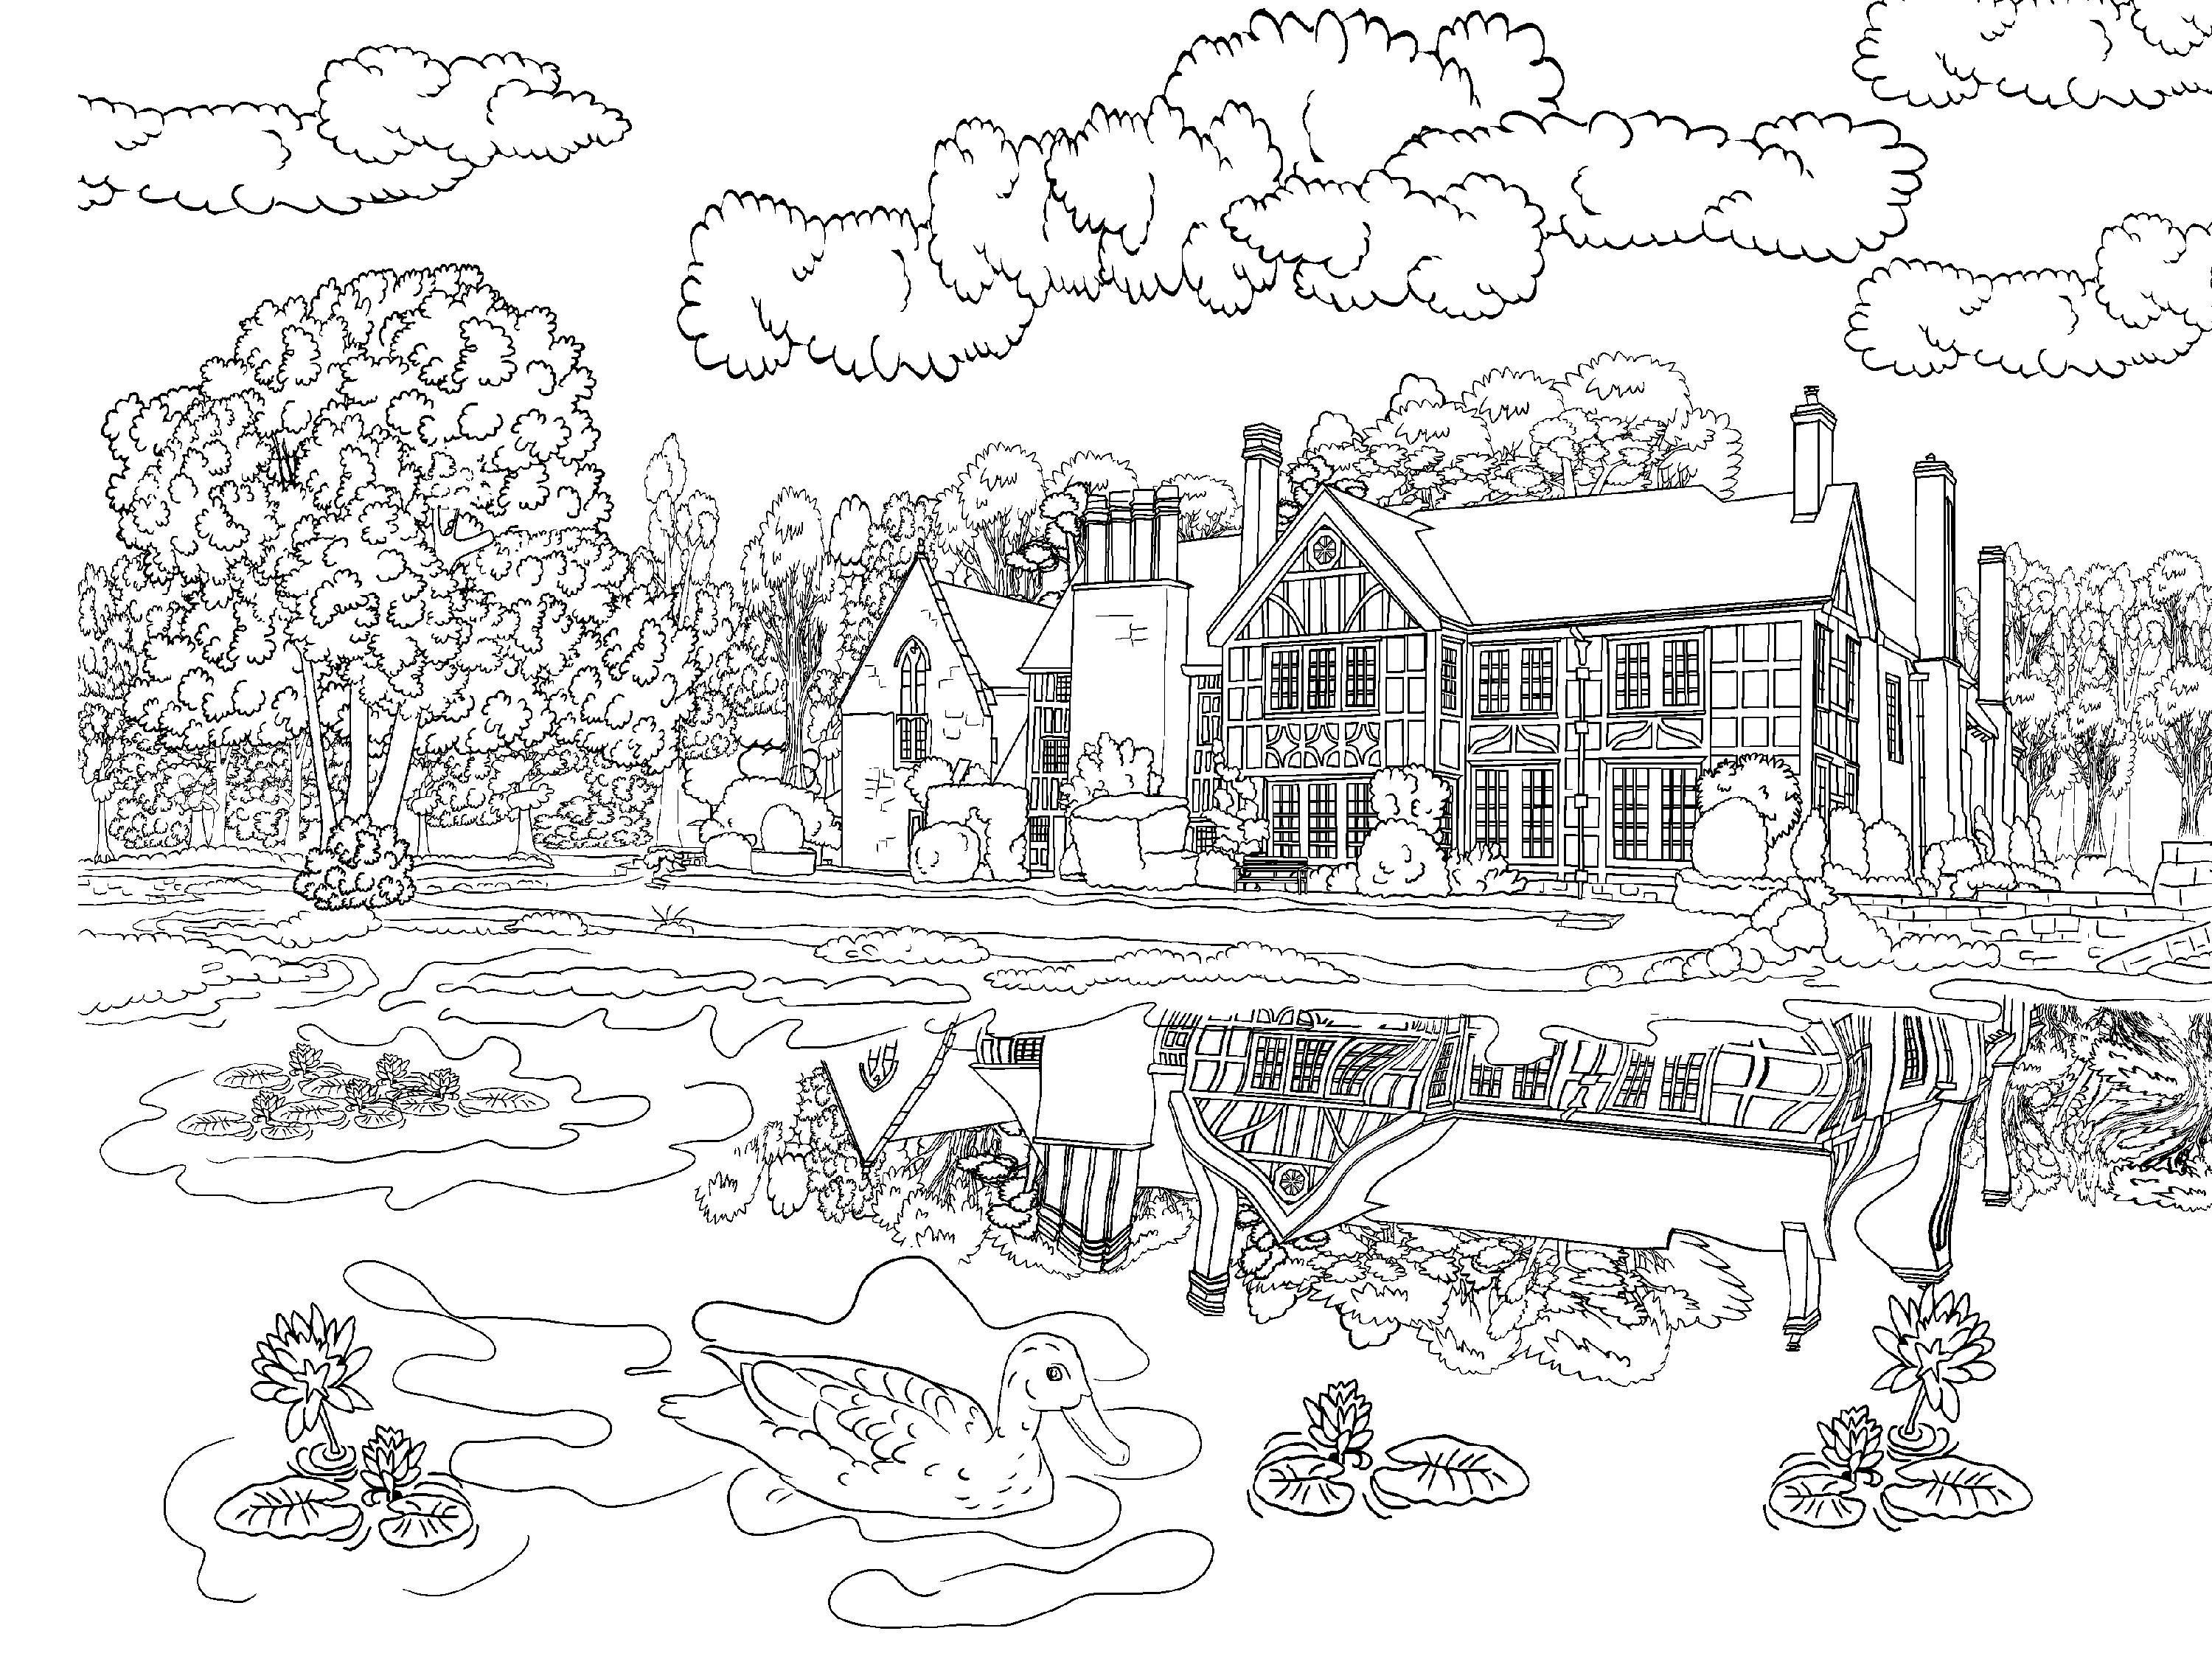 scenery coloring pages Beautiful Scenery Colouring Pages | Coloring pages for all  scenery coloring pages